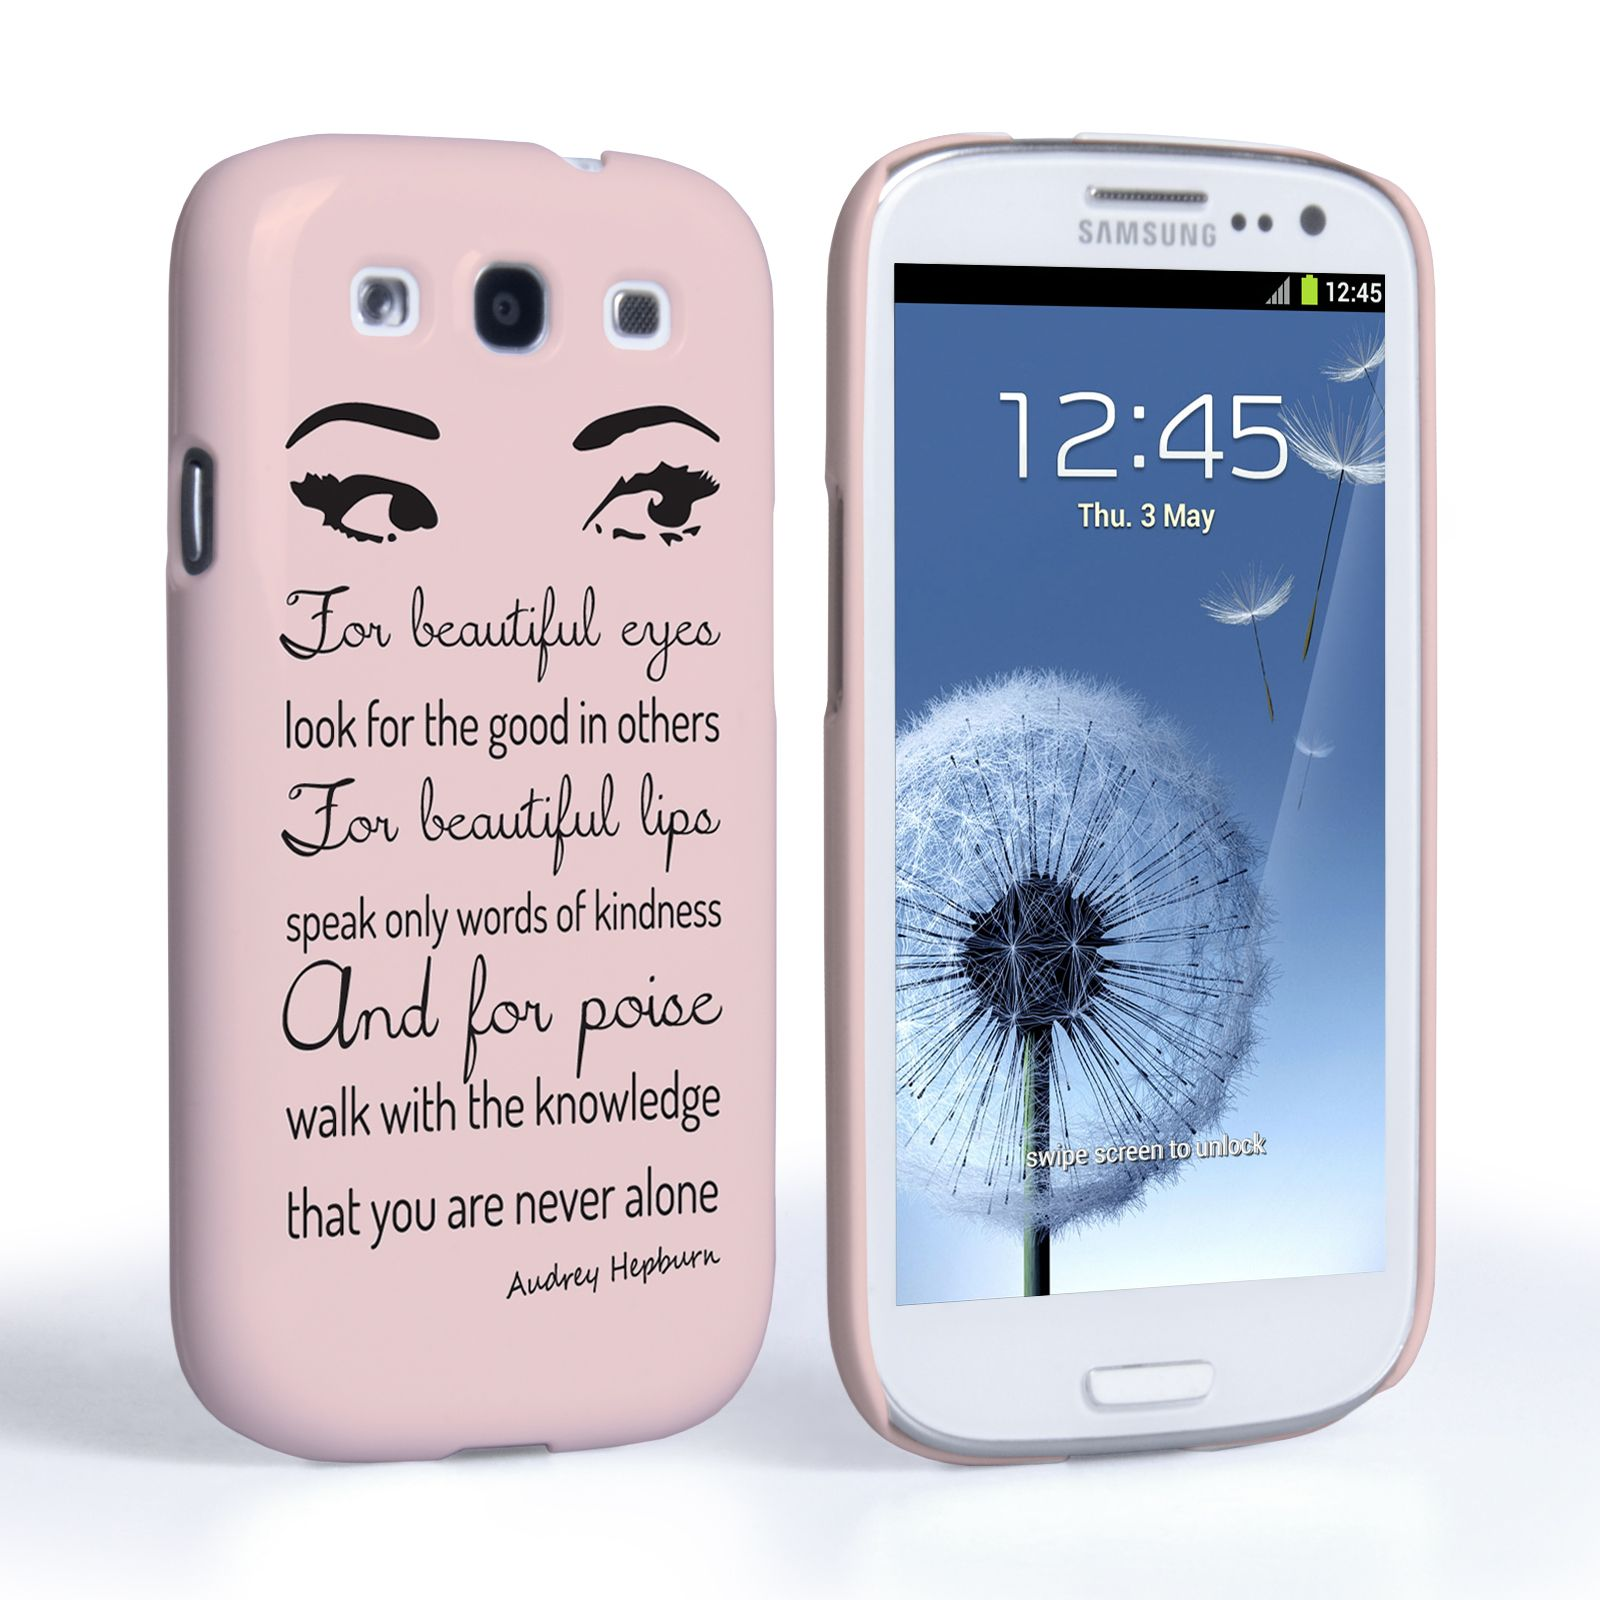 Samsung Quote Magnificent Caseflex Samsung Galaxy S3 Audrey Hepburn 'eyes' Quote Case . Inspiration Design